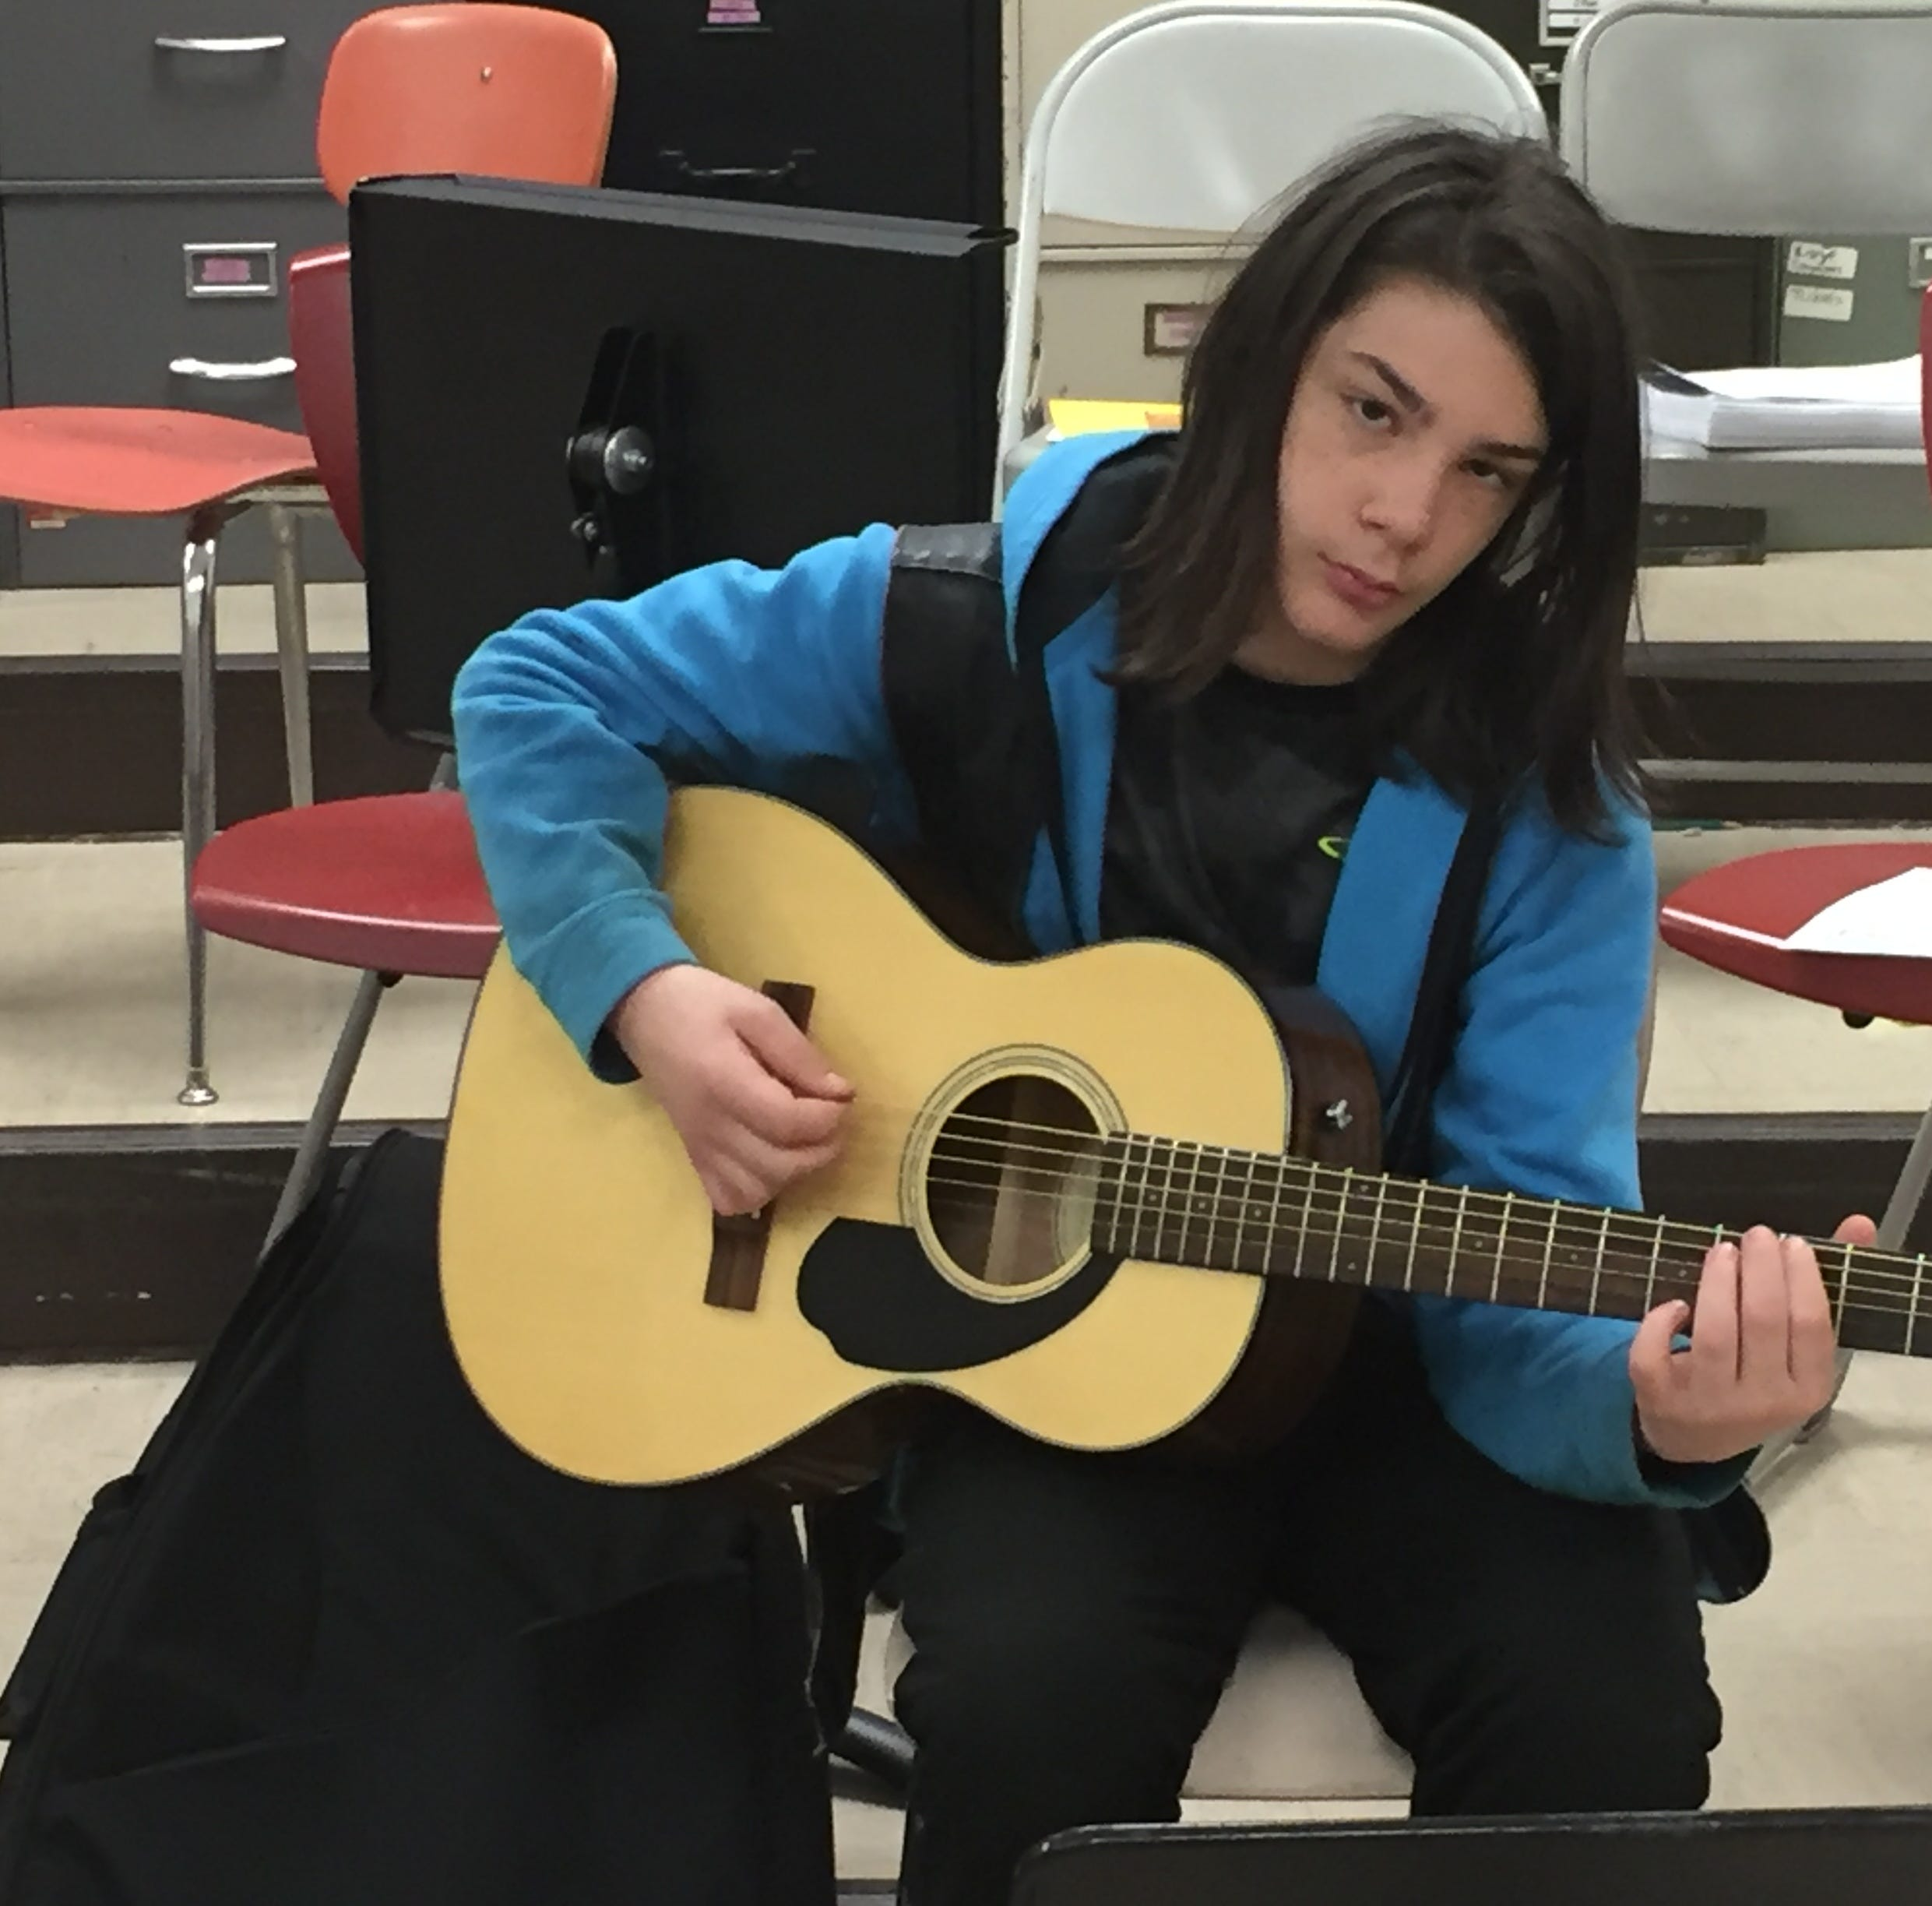 Shelby Middle School students learning guitar